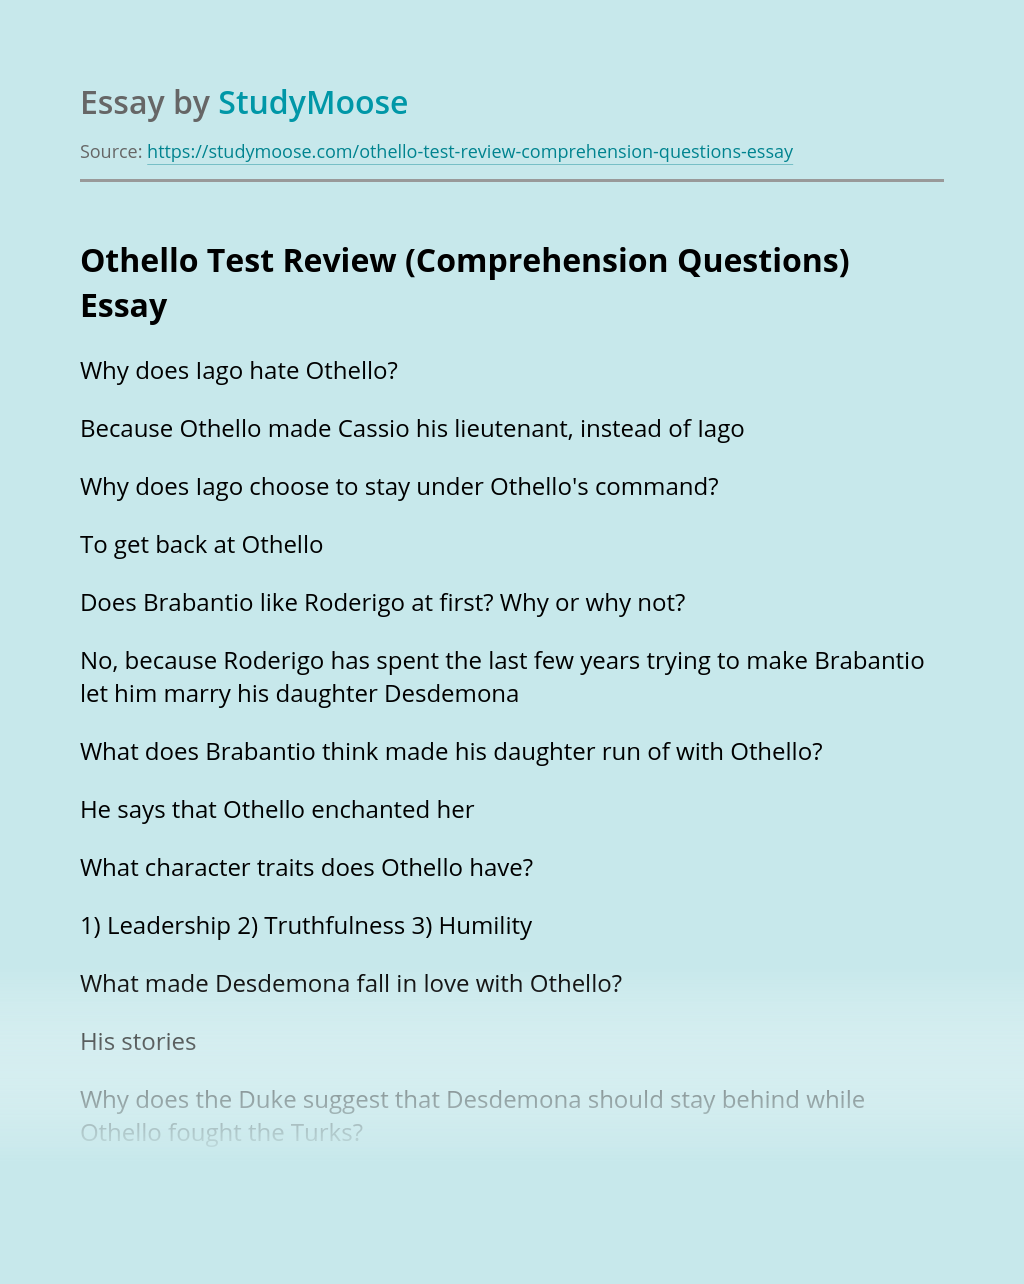 Othello Test Review (Comprehension Questions)